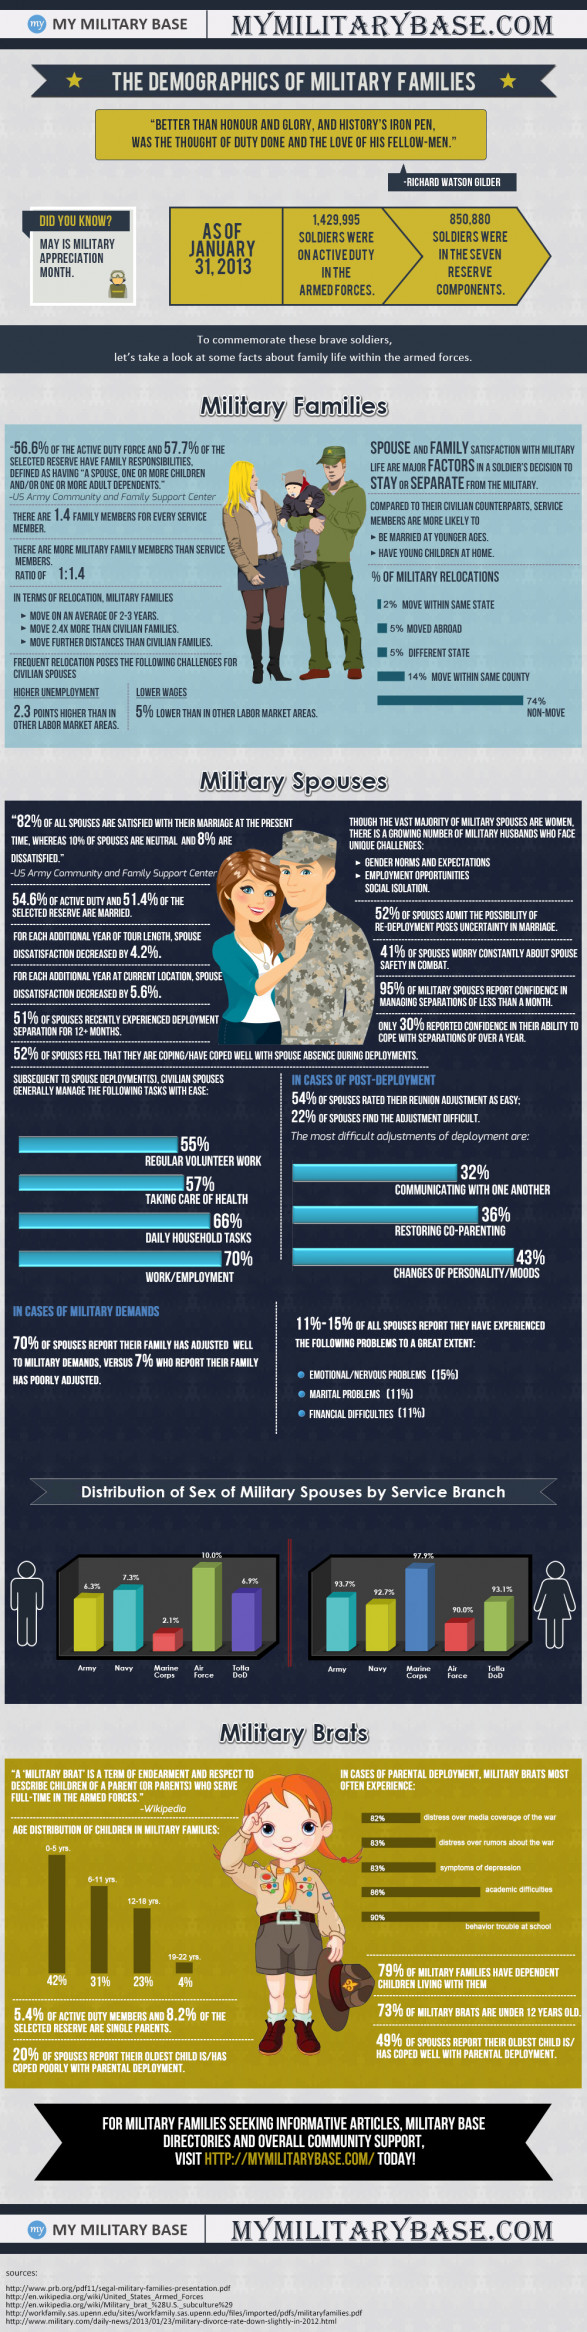 The Demographics of Military Families